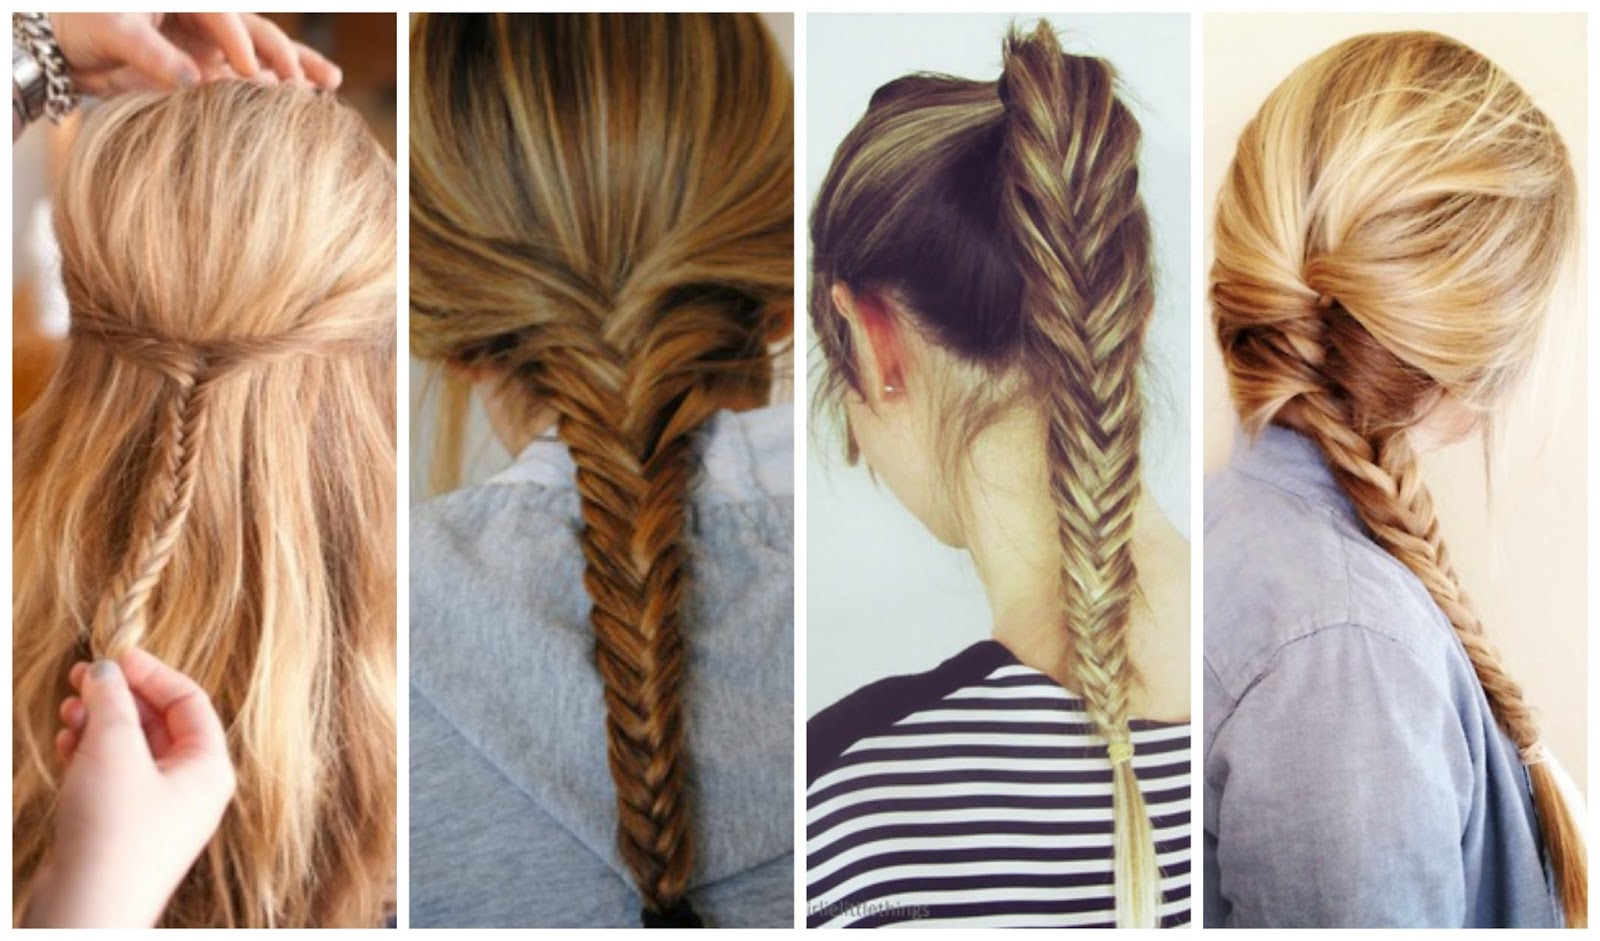 Hairstyles Pretty for school tumblr recommend to wear for summer in 2019